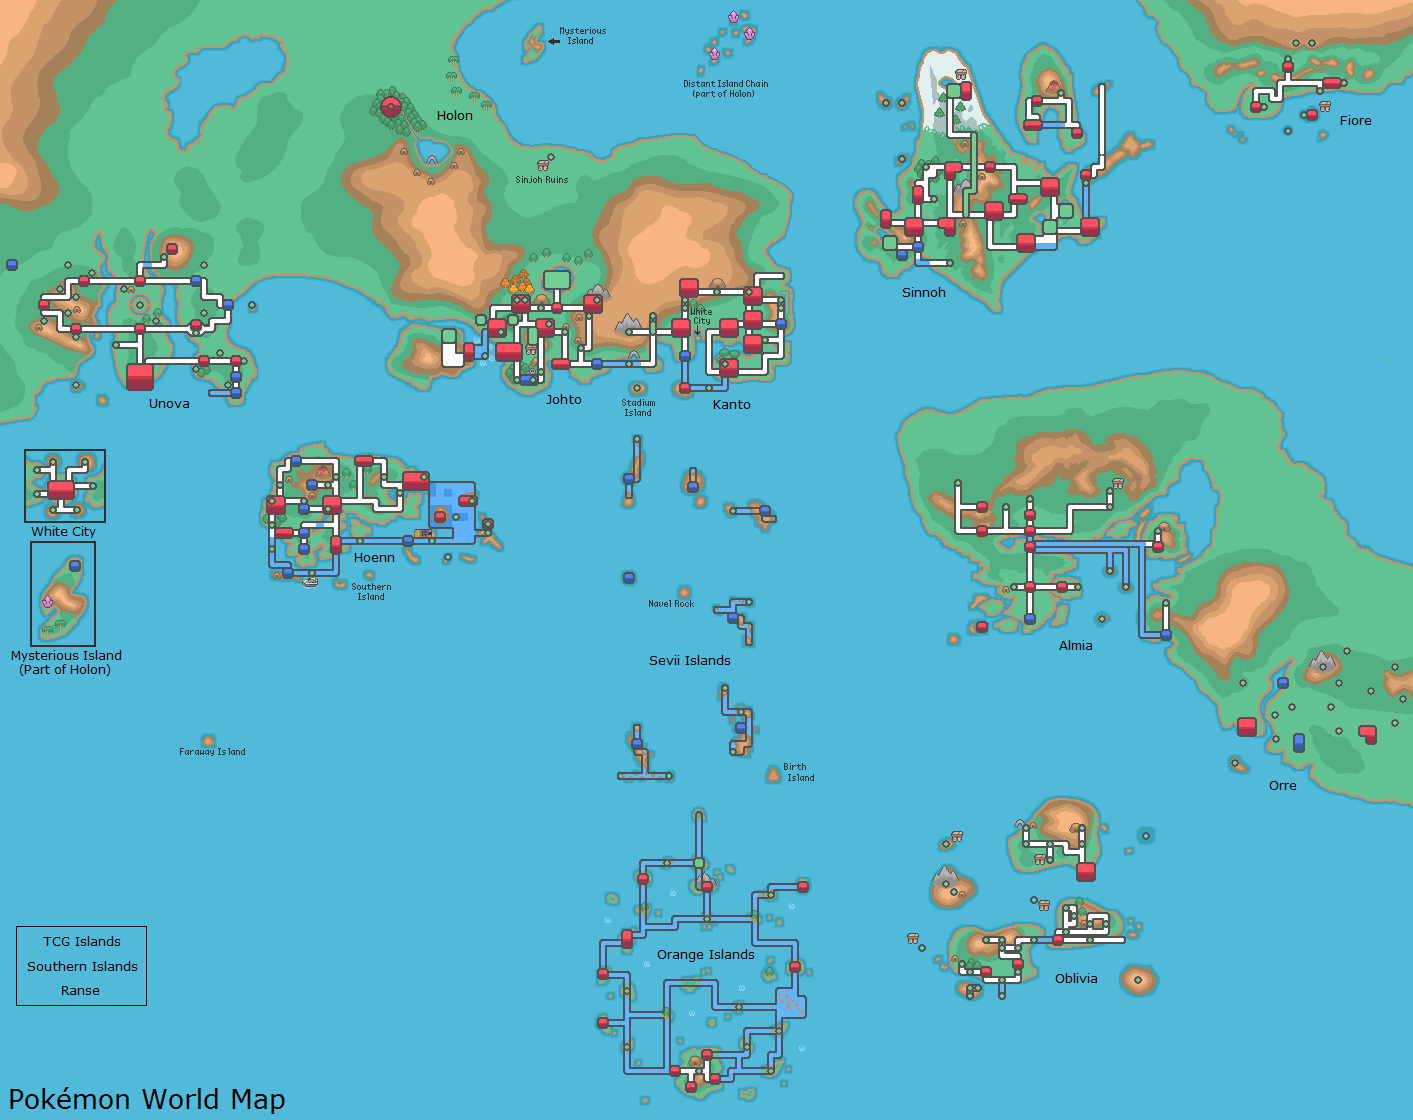 Pokemon World Map | VoVatia